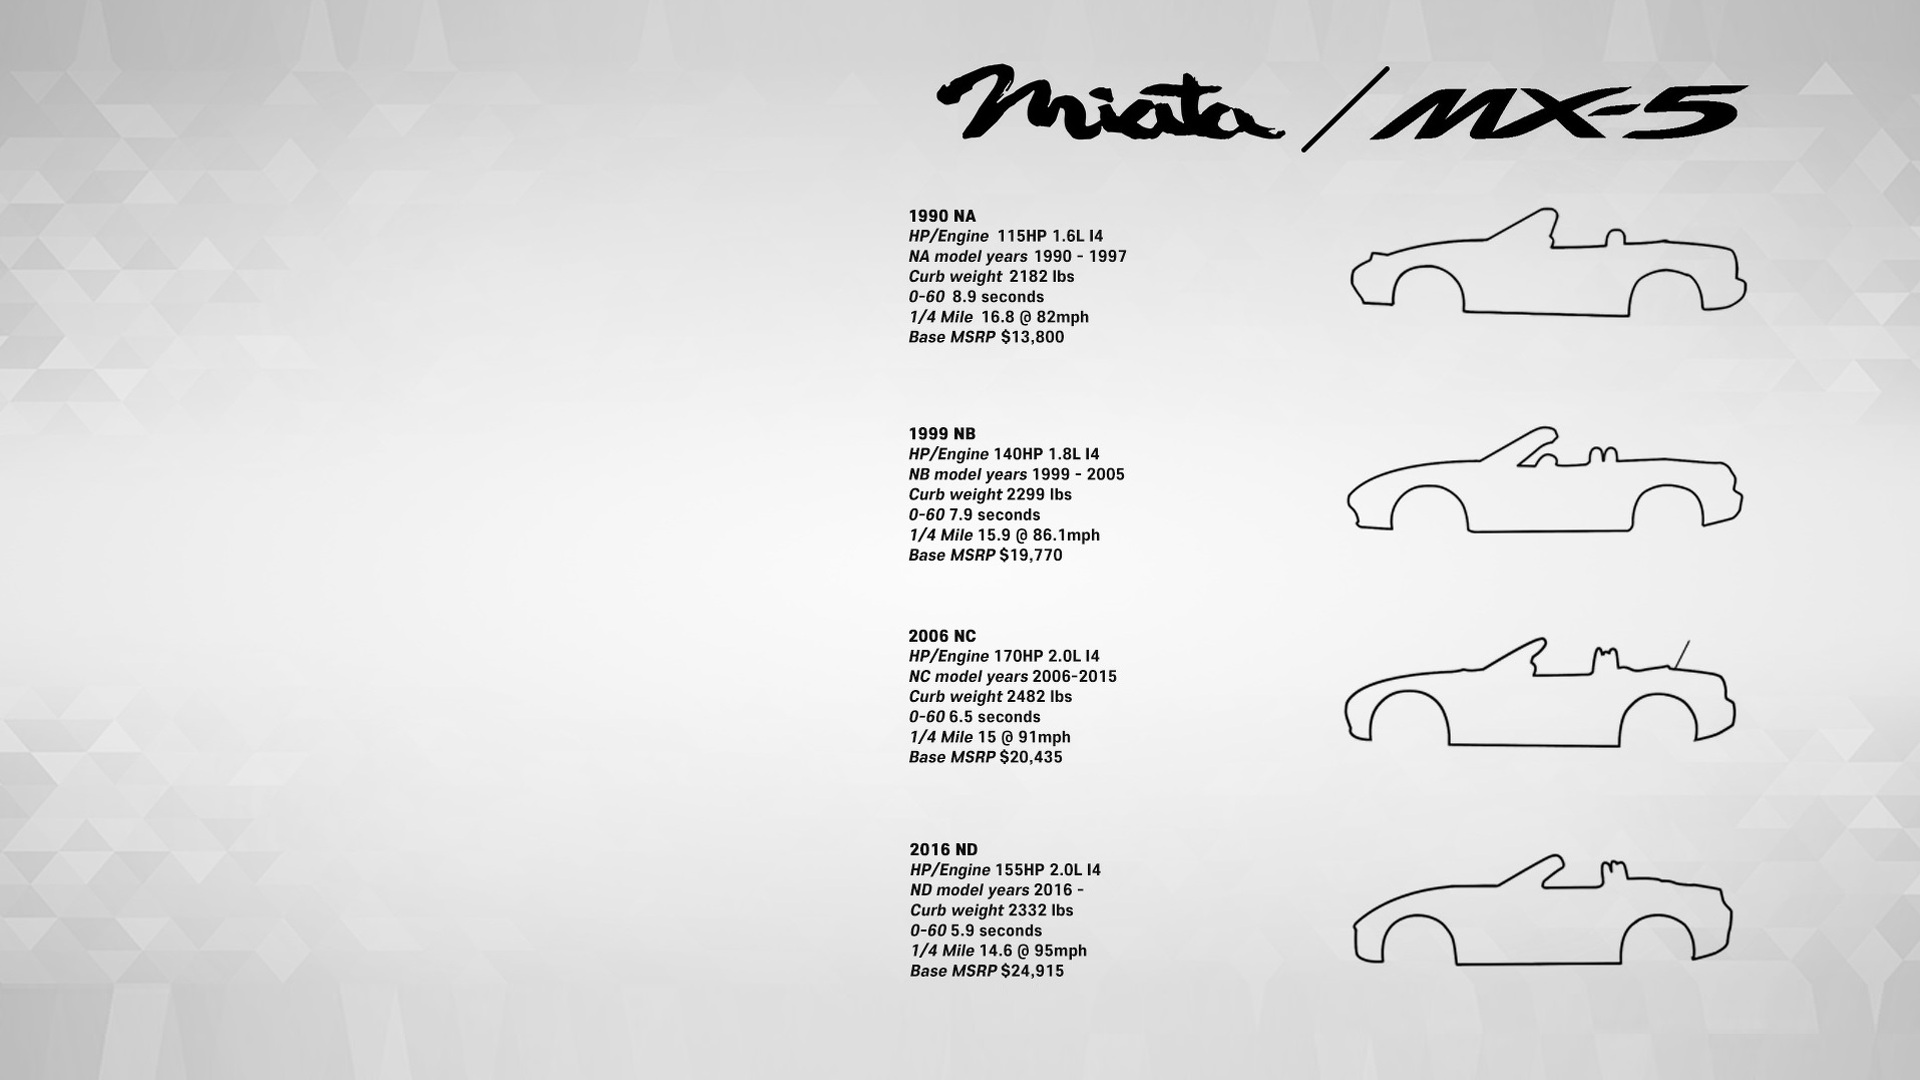 Download This Mazda Mx 5 Miata Generations Poster Or Wallpaper For Free